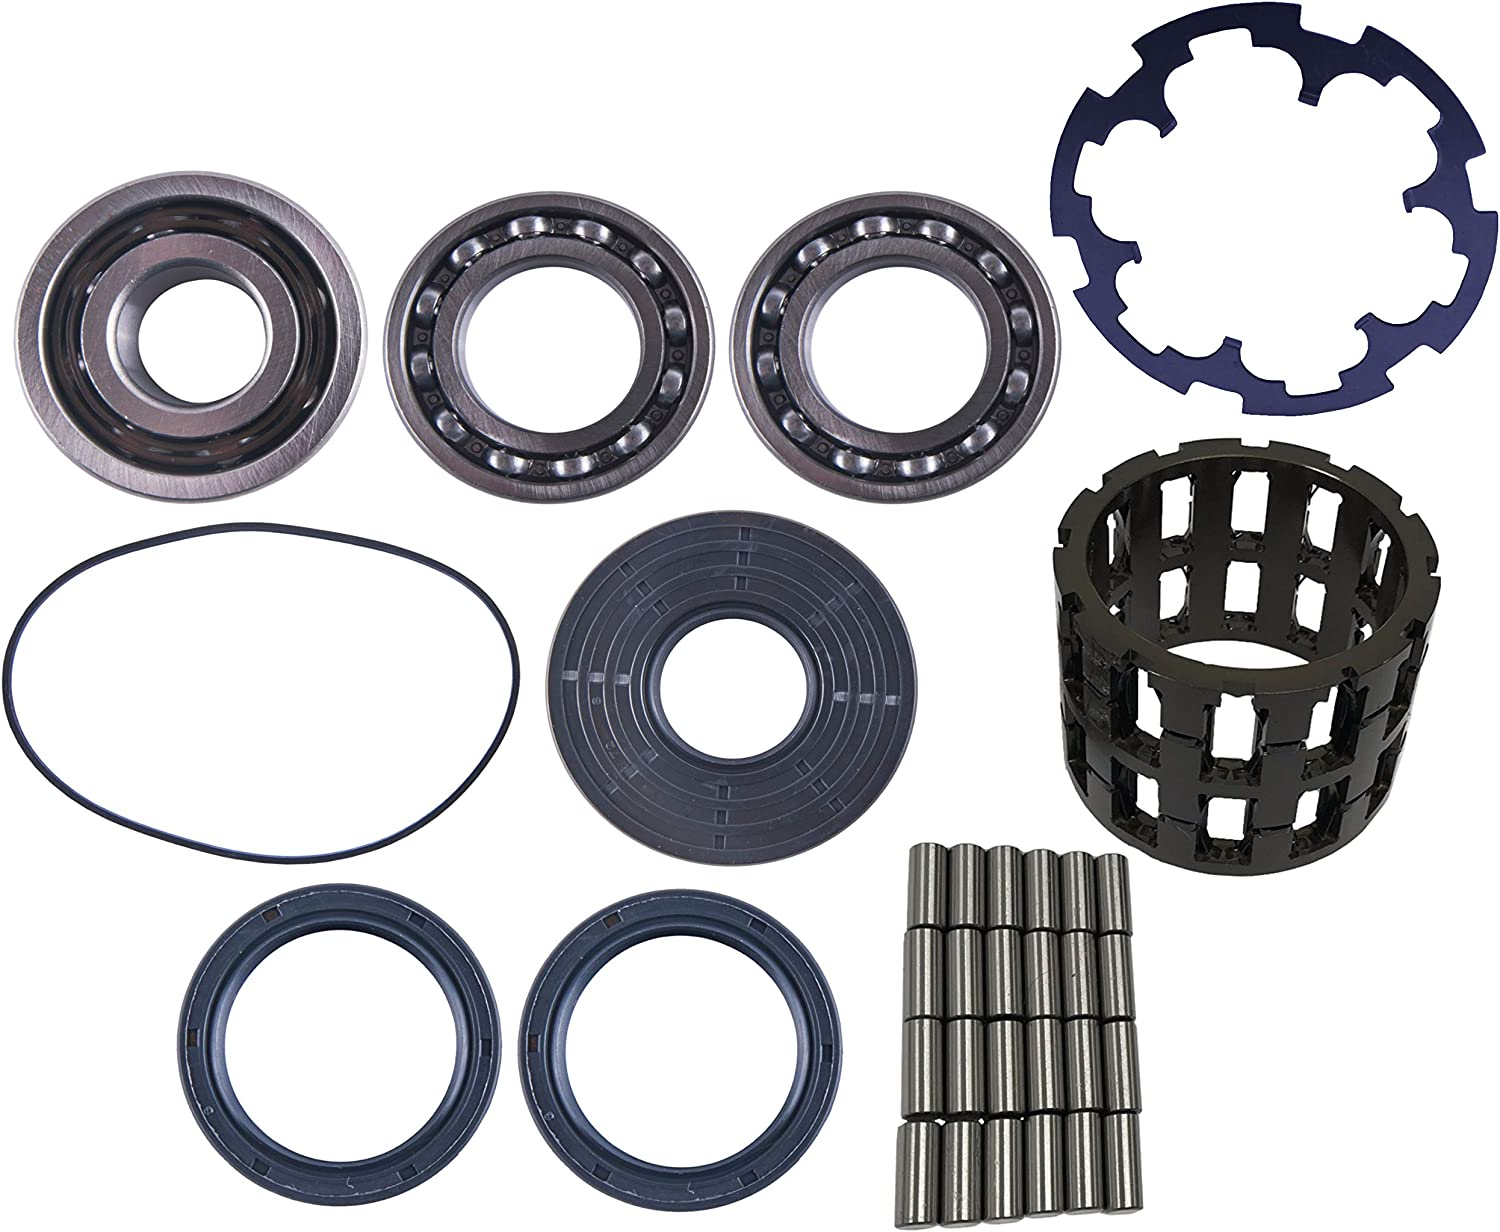 East Lake Axle front differential kit with Sprague /& Armature Plate compatible with Polaris RZR 570 900 1000